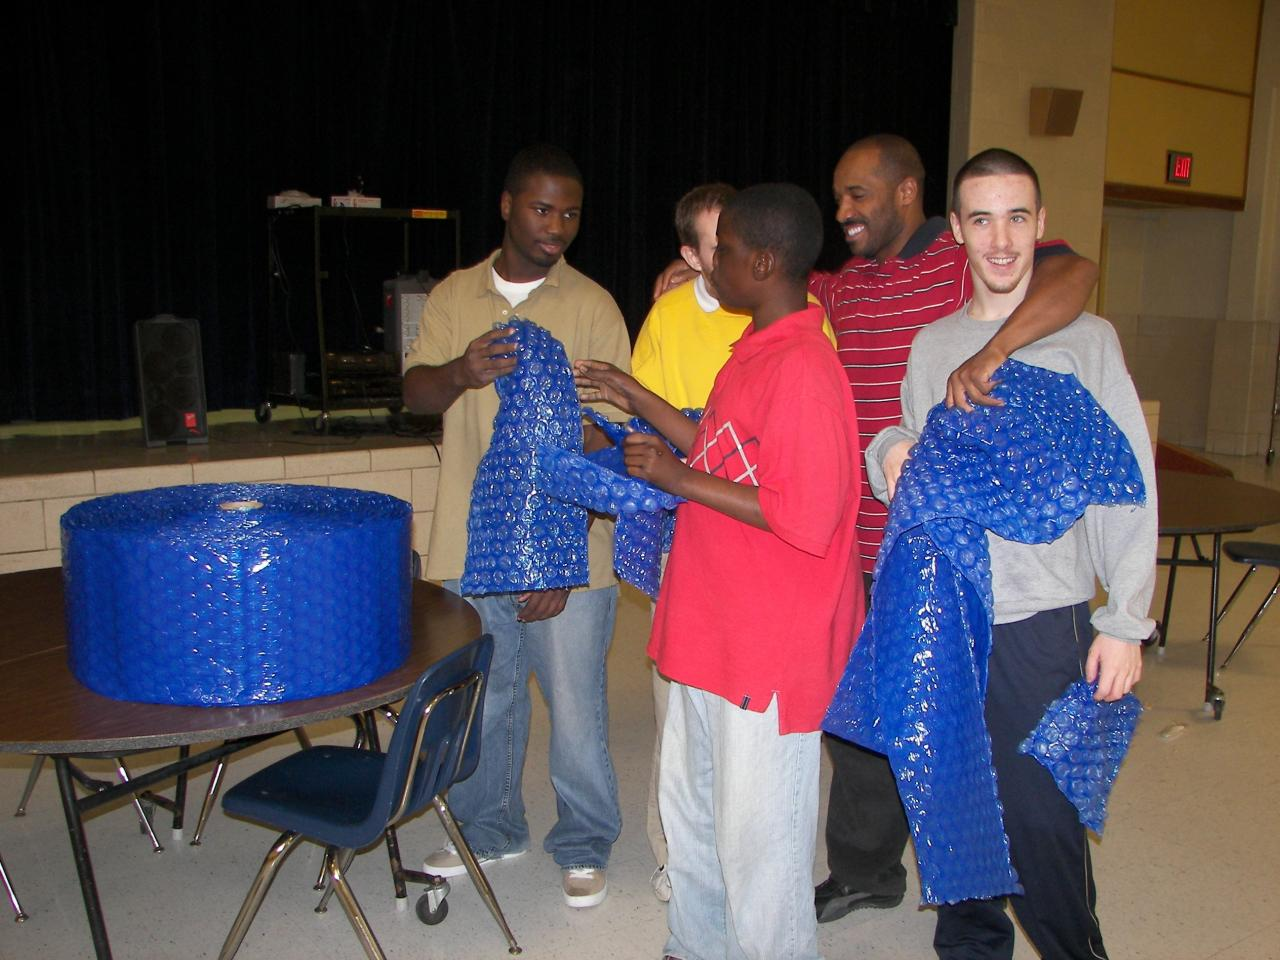 Dereck_handing_out_bubble_wrap.